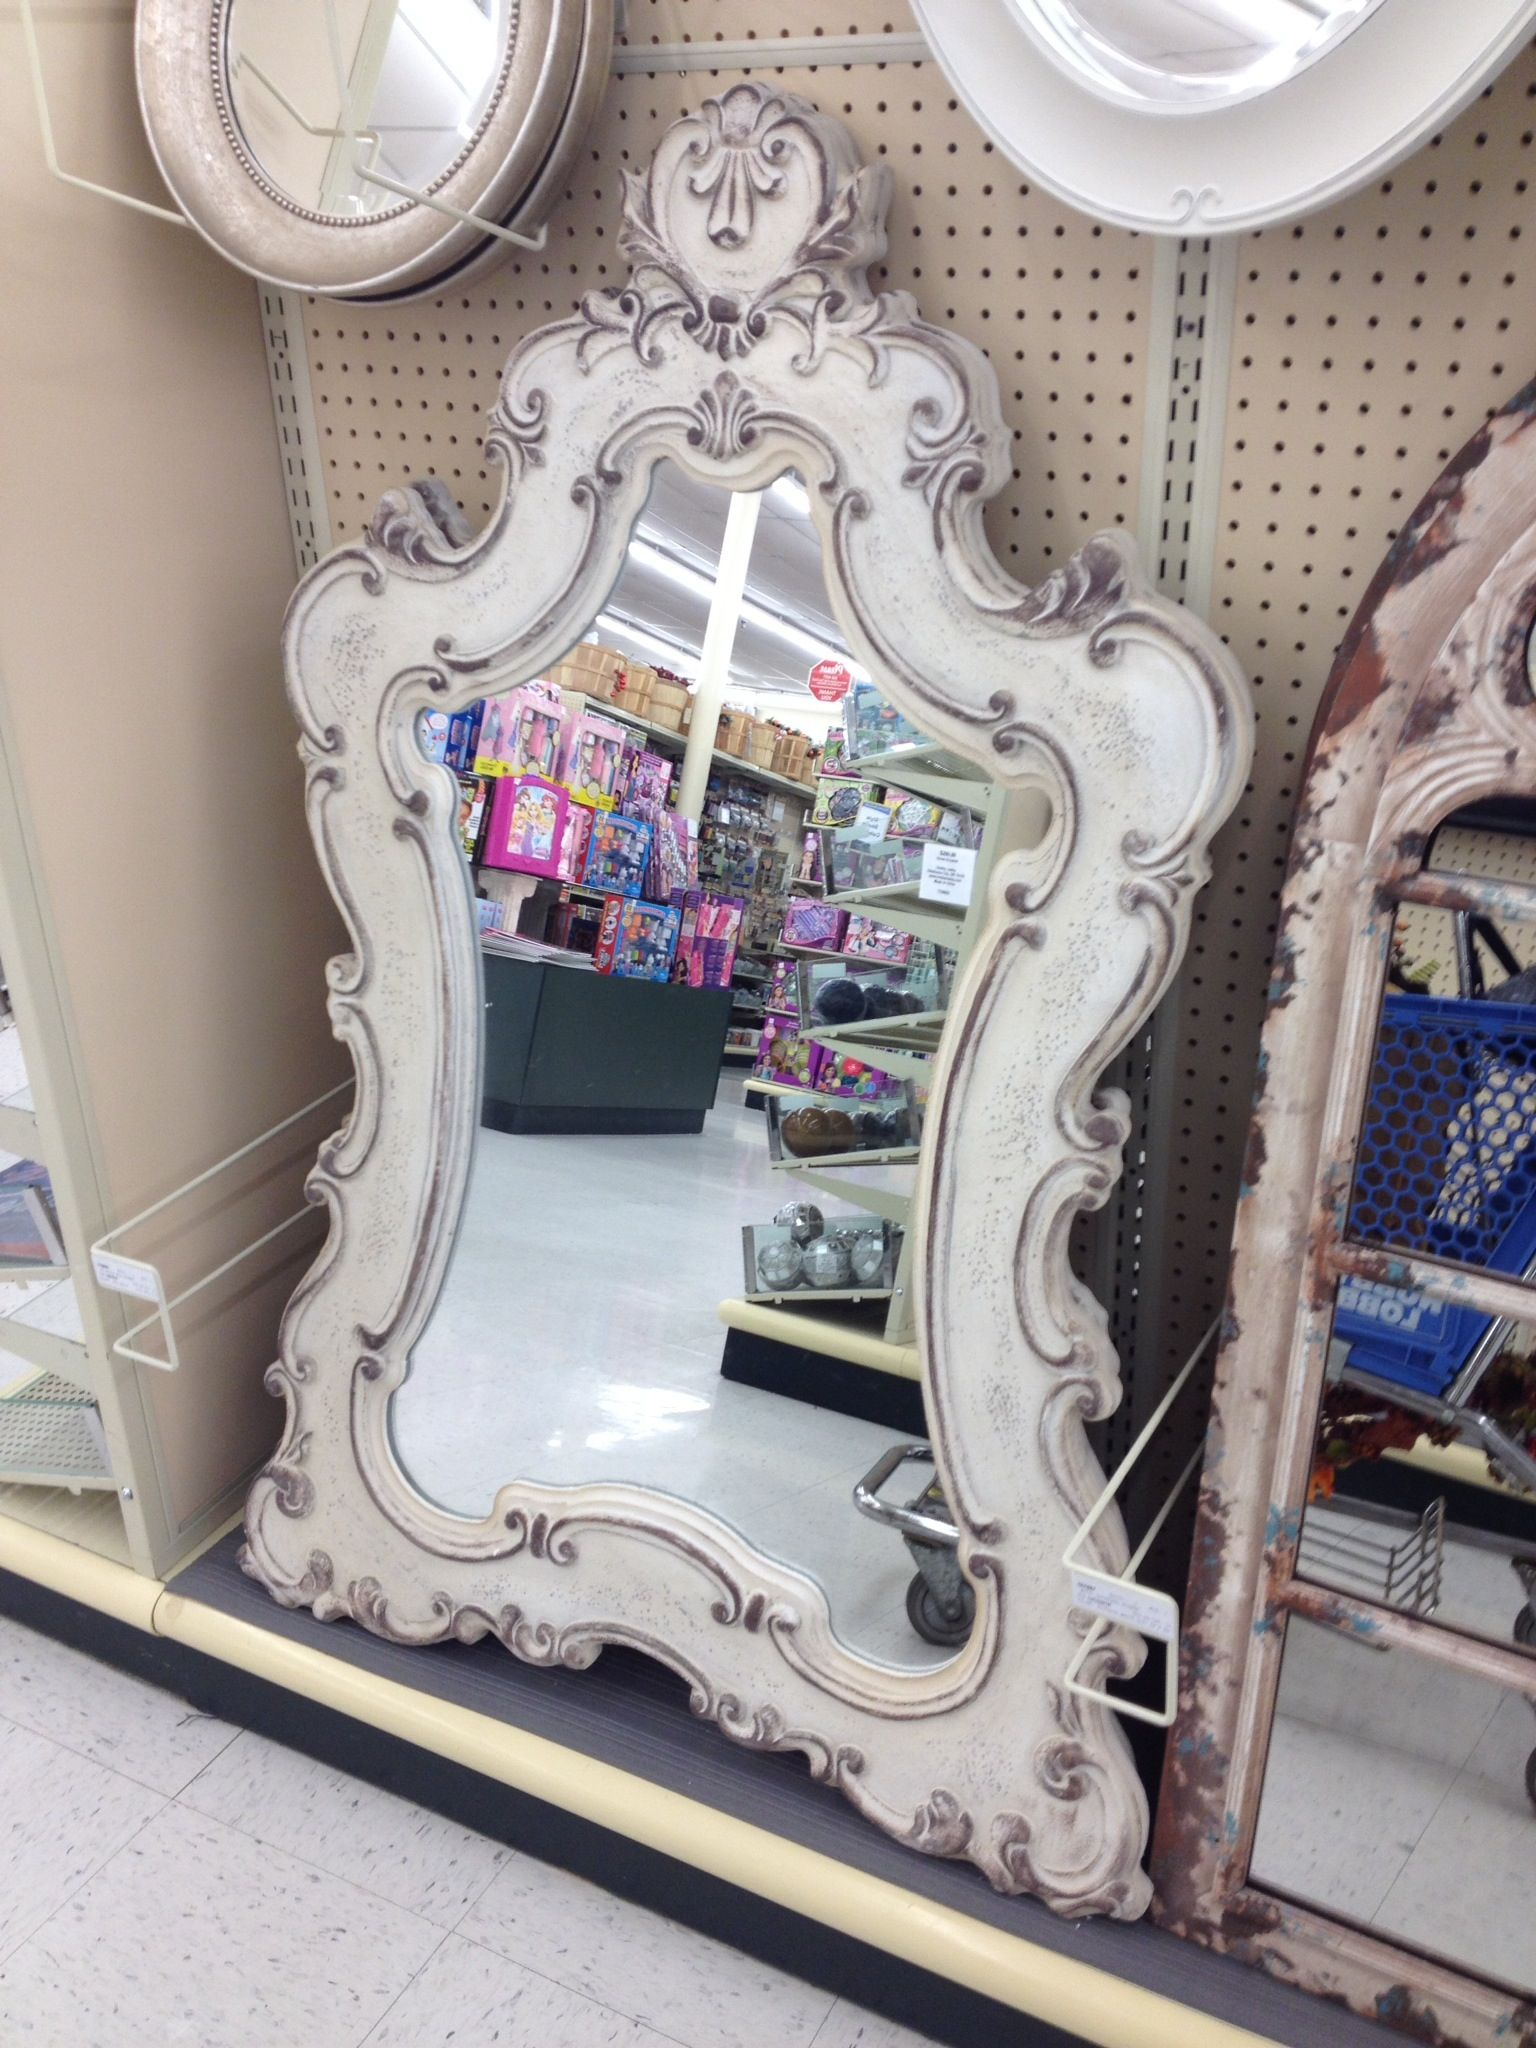 Mirror from hobby lobby | Bath | Pinterest | Lobbies, Room and ...